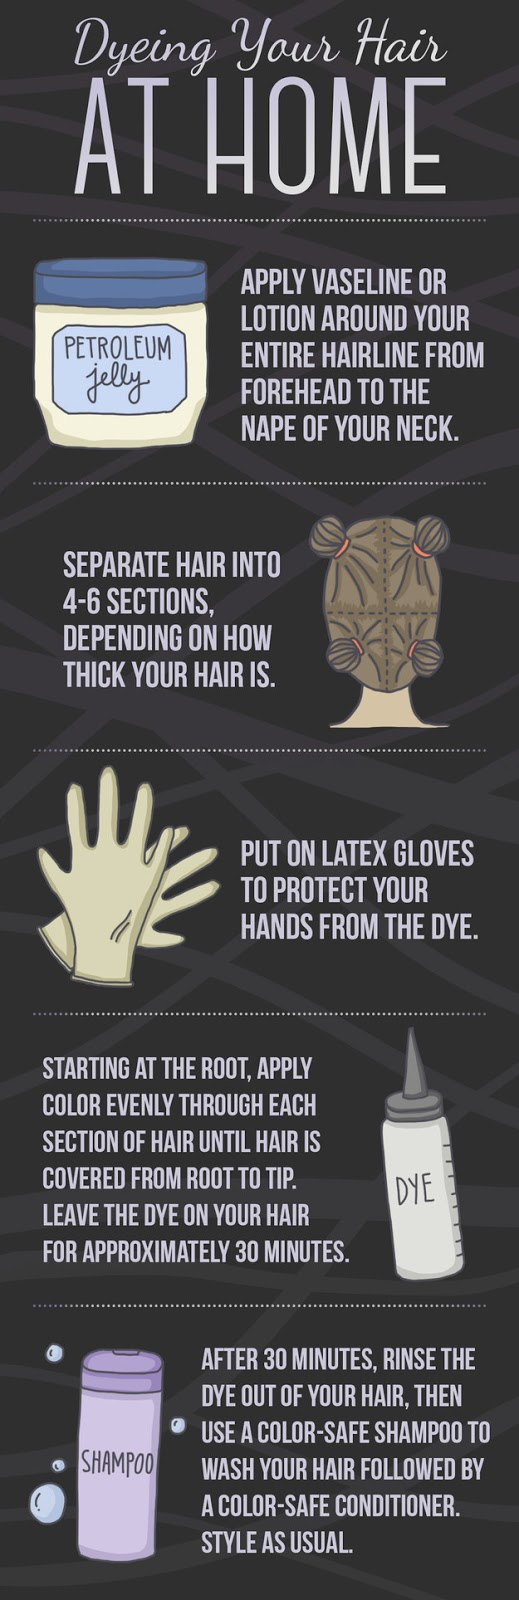 what to do when you want to touch up your hair dye at home